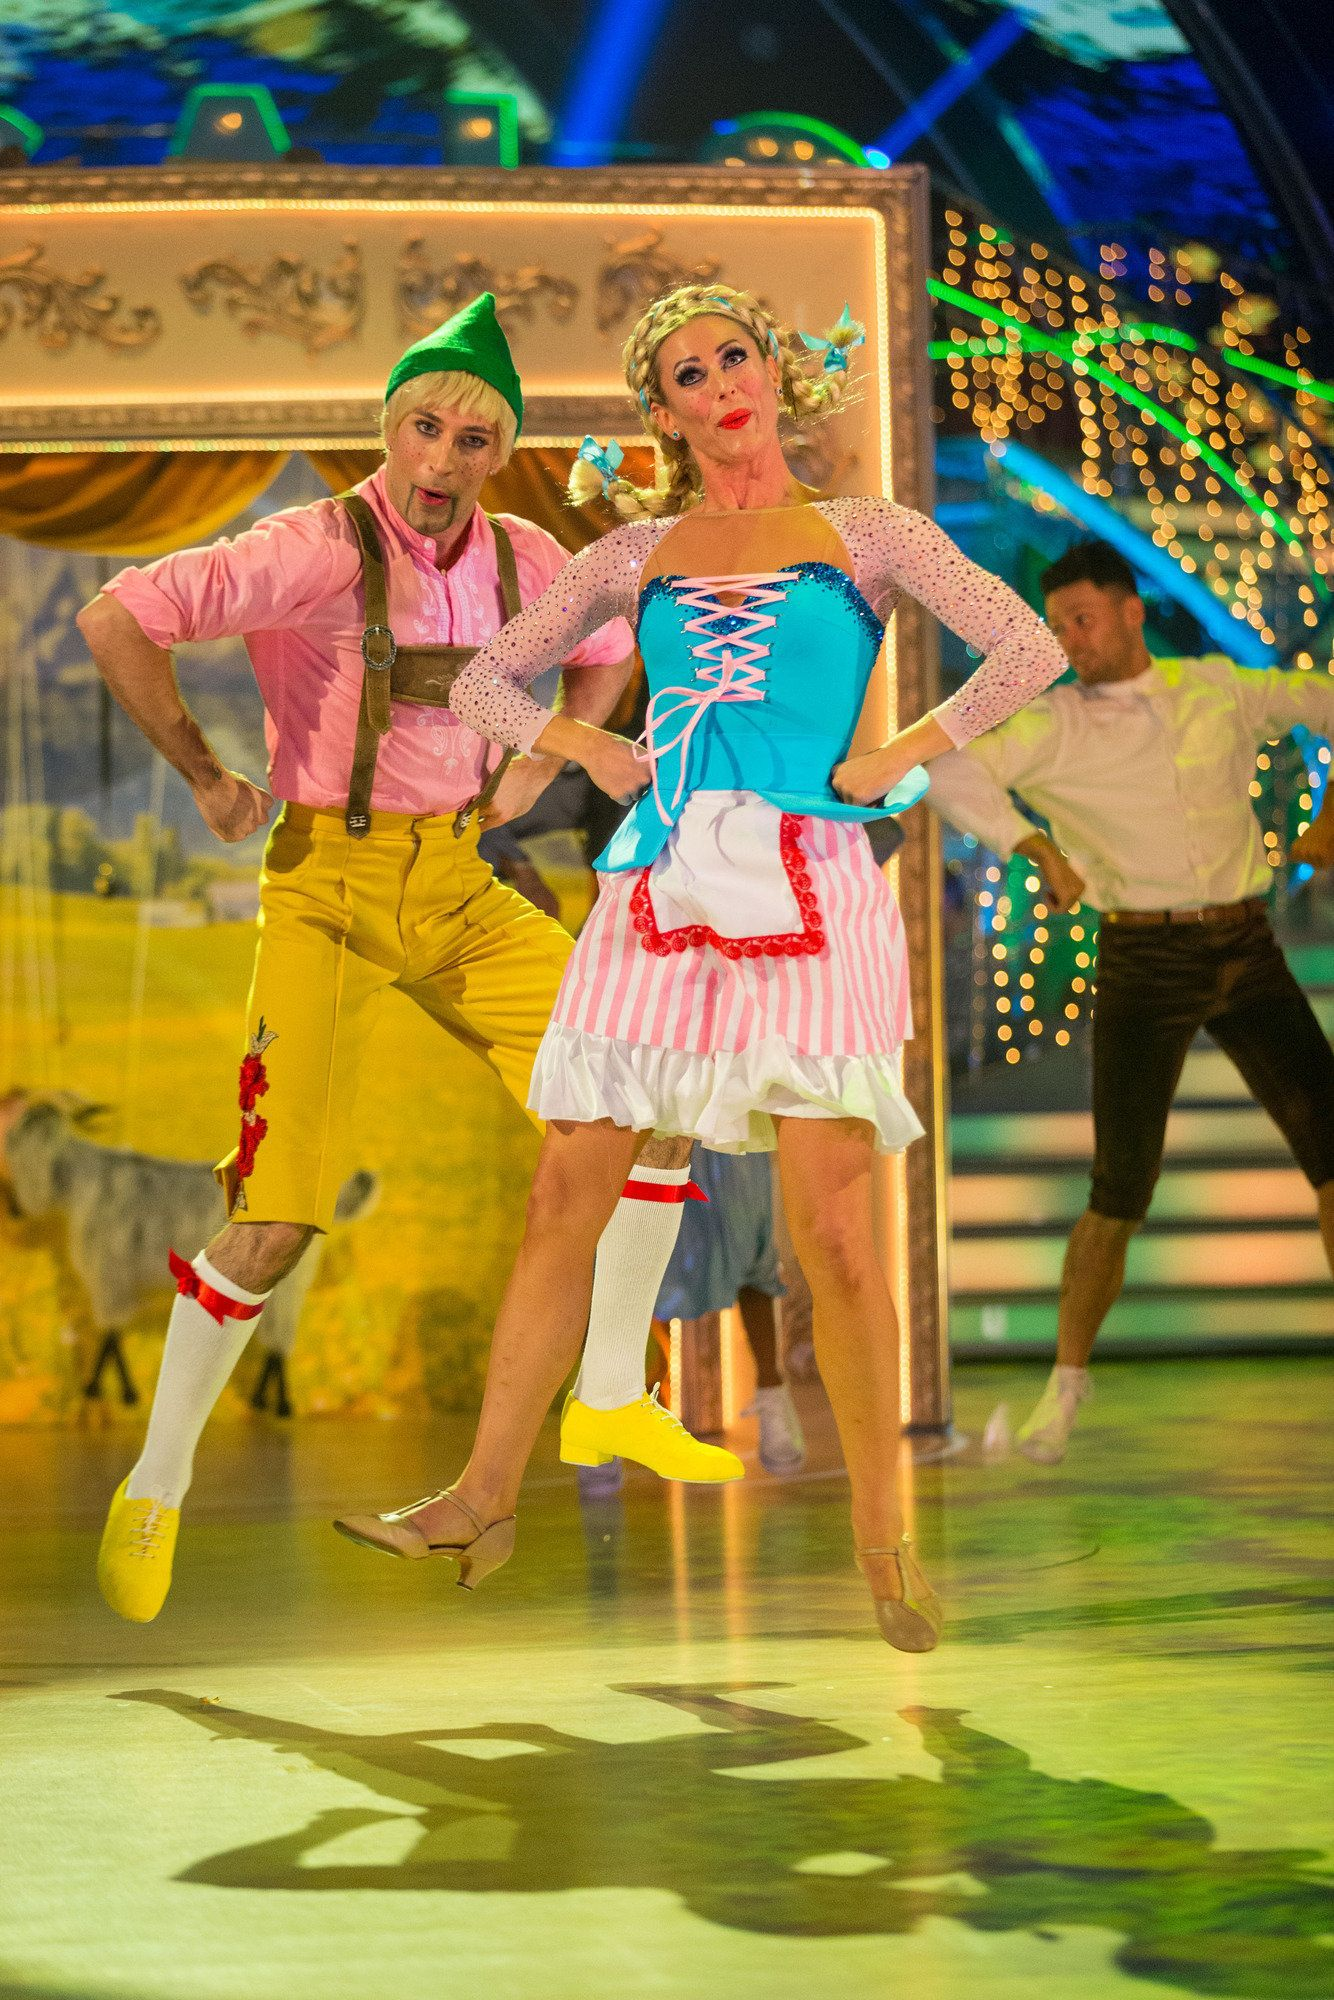 If You Haven't Seen Faye Tozer's Latest 'Strictly Come Dancing' Routine Yet, You Really Have